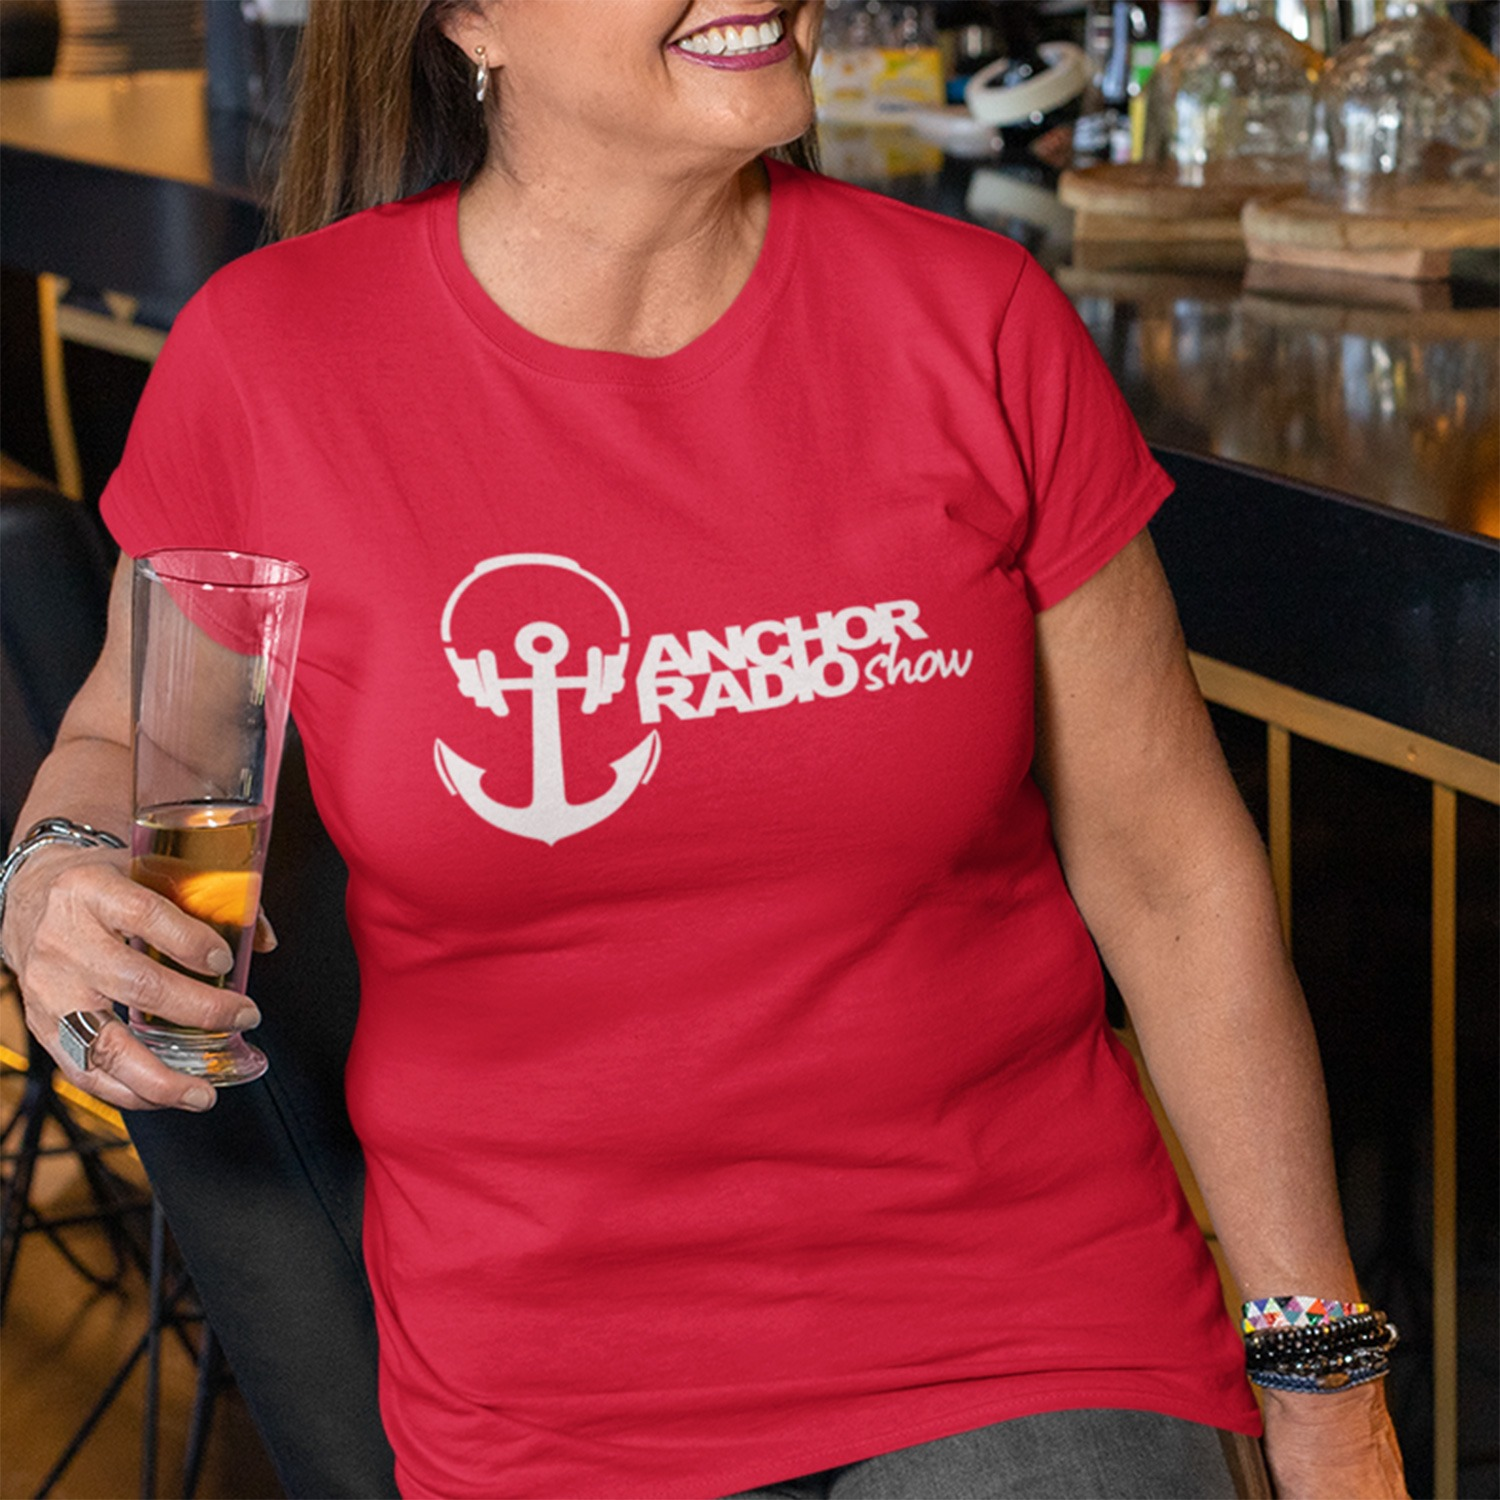 Anchor Radio Show Ladies Fitted T-shirt, The Troprock Shop